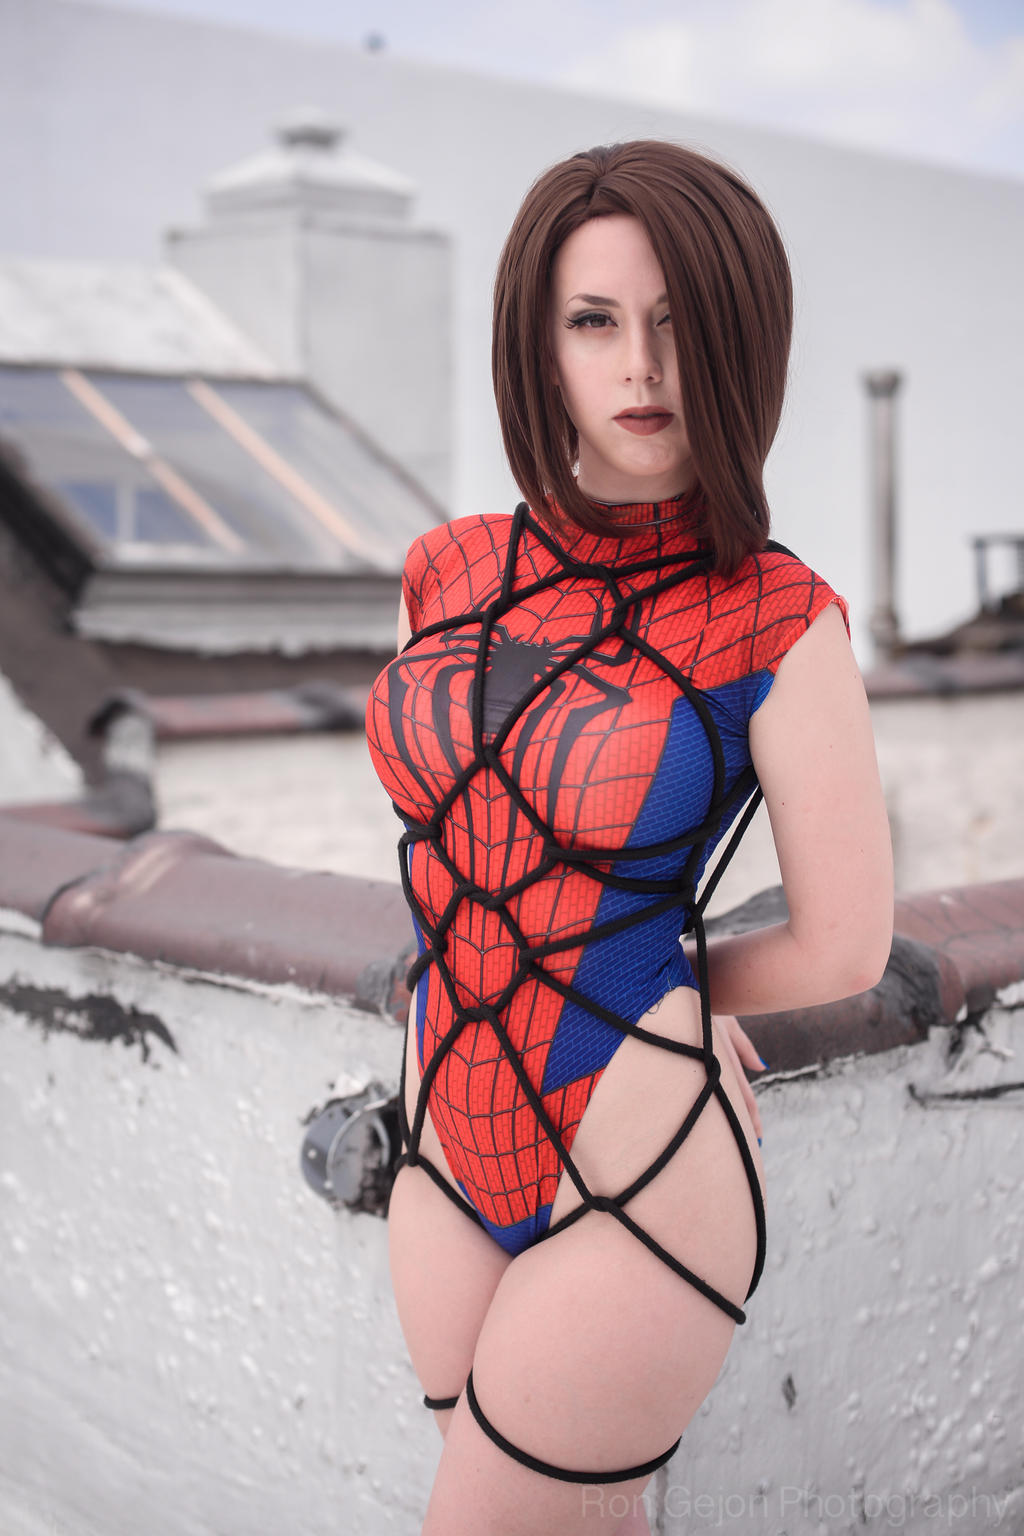 Just your Friendly Neighborhood Spiderman by